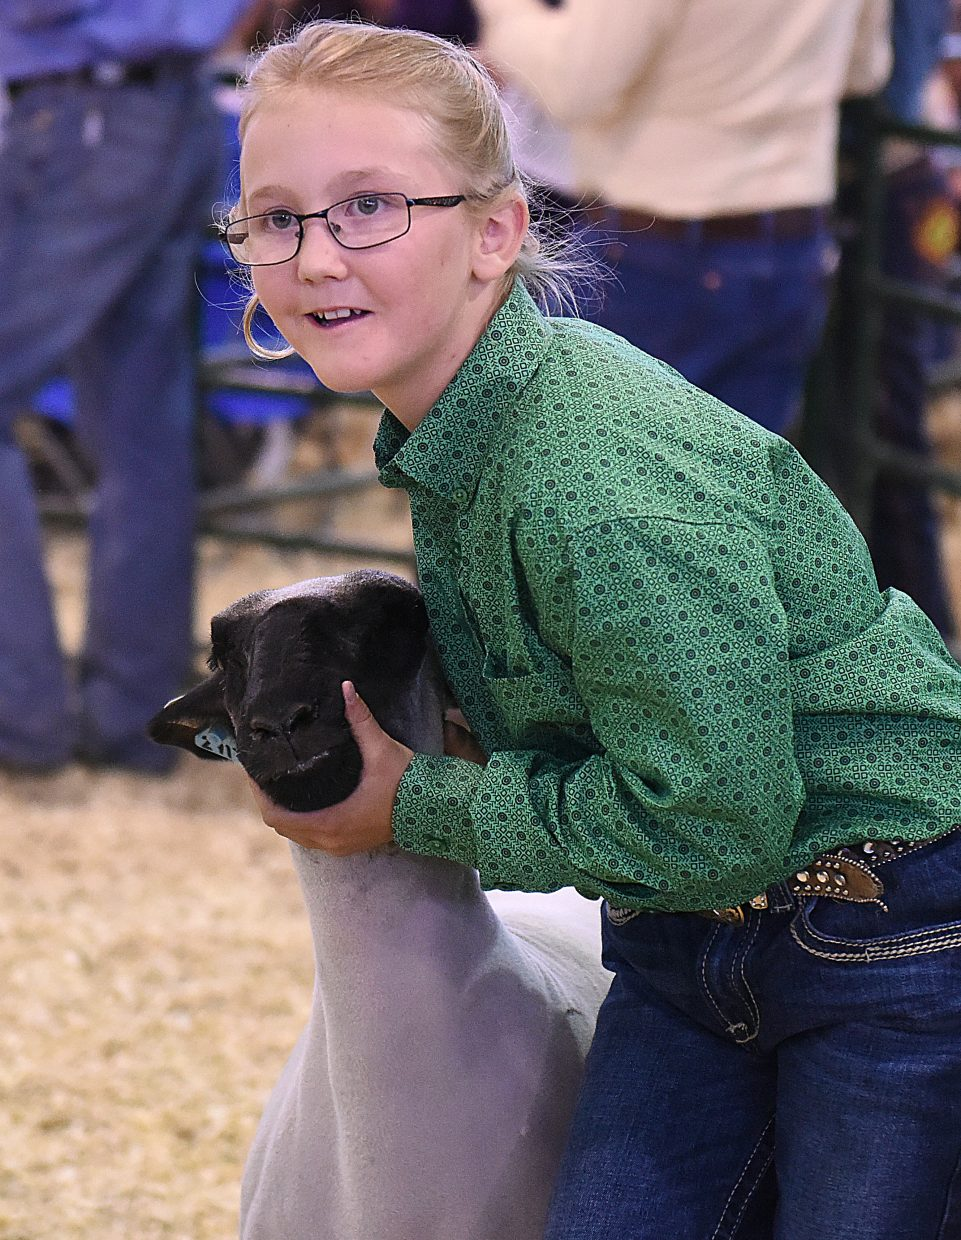 Larhae Whaley hangs tight while showing off her sheep Saturday at the Routt County Fair Junior Livestock sale in Hayden.